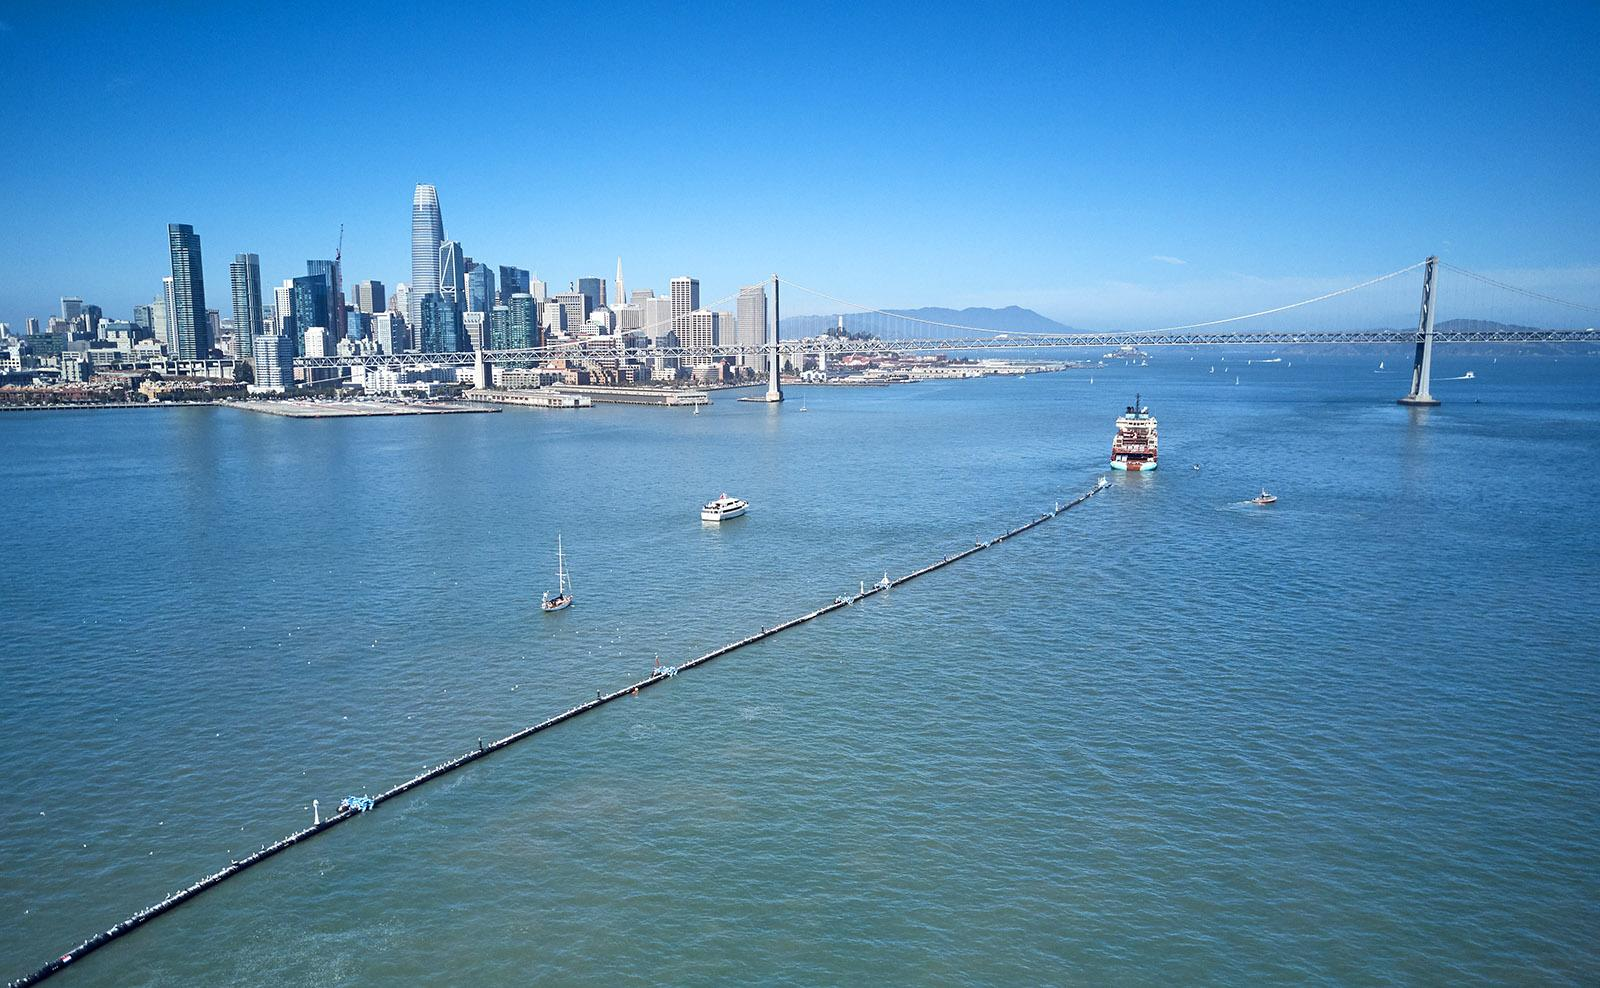 An ambitious project to clean up the 88,000 tons of plastic floating in the